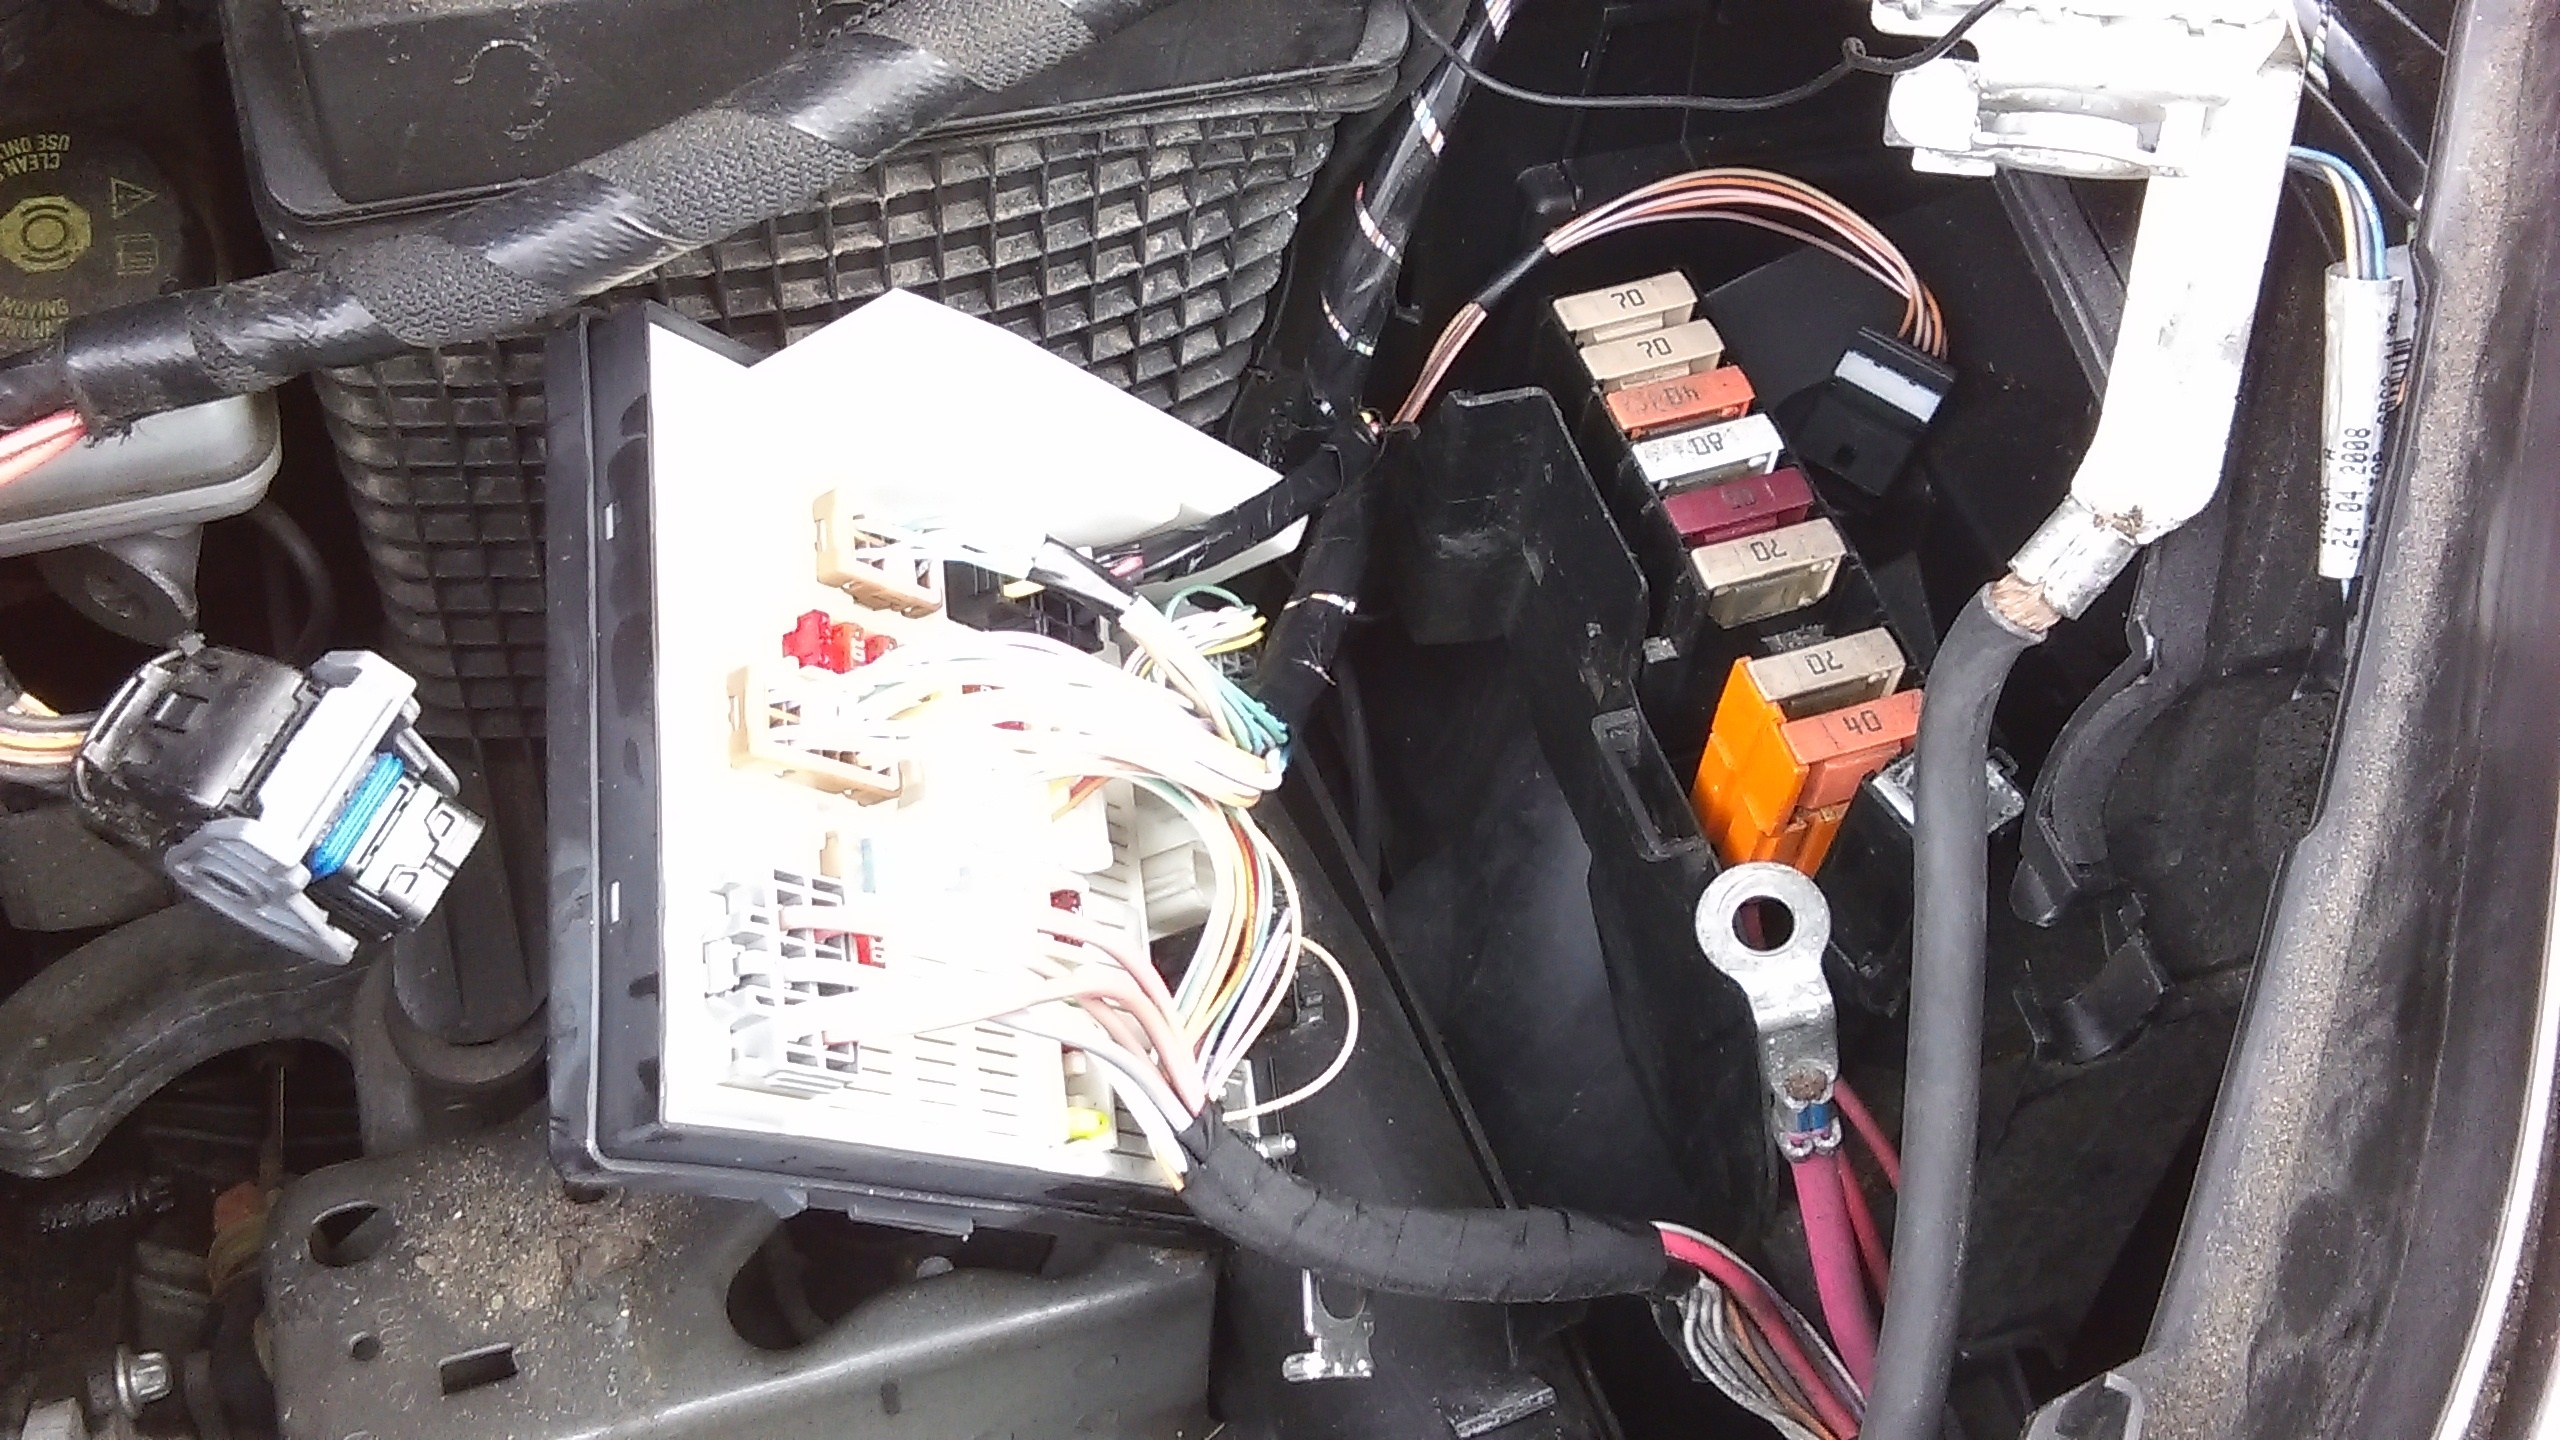 Fuse Box Renault Scenic 2004 - wiring diagram wave-page -  wave-page.albergoinsicilia.it   Renault Scenic Fuse Box For Sale      wave-page.albergoinsicilia.it